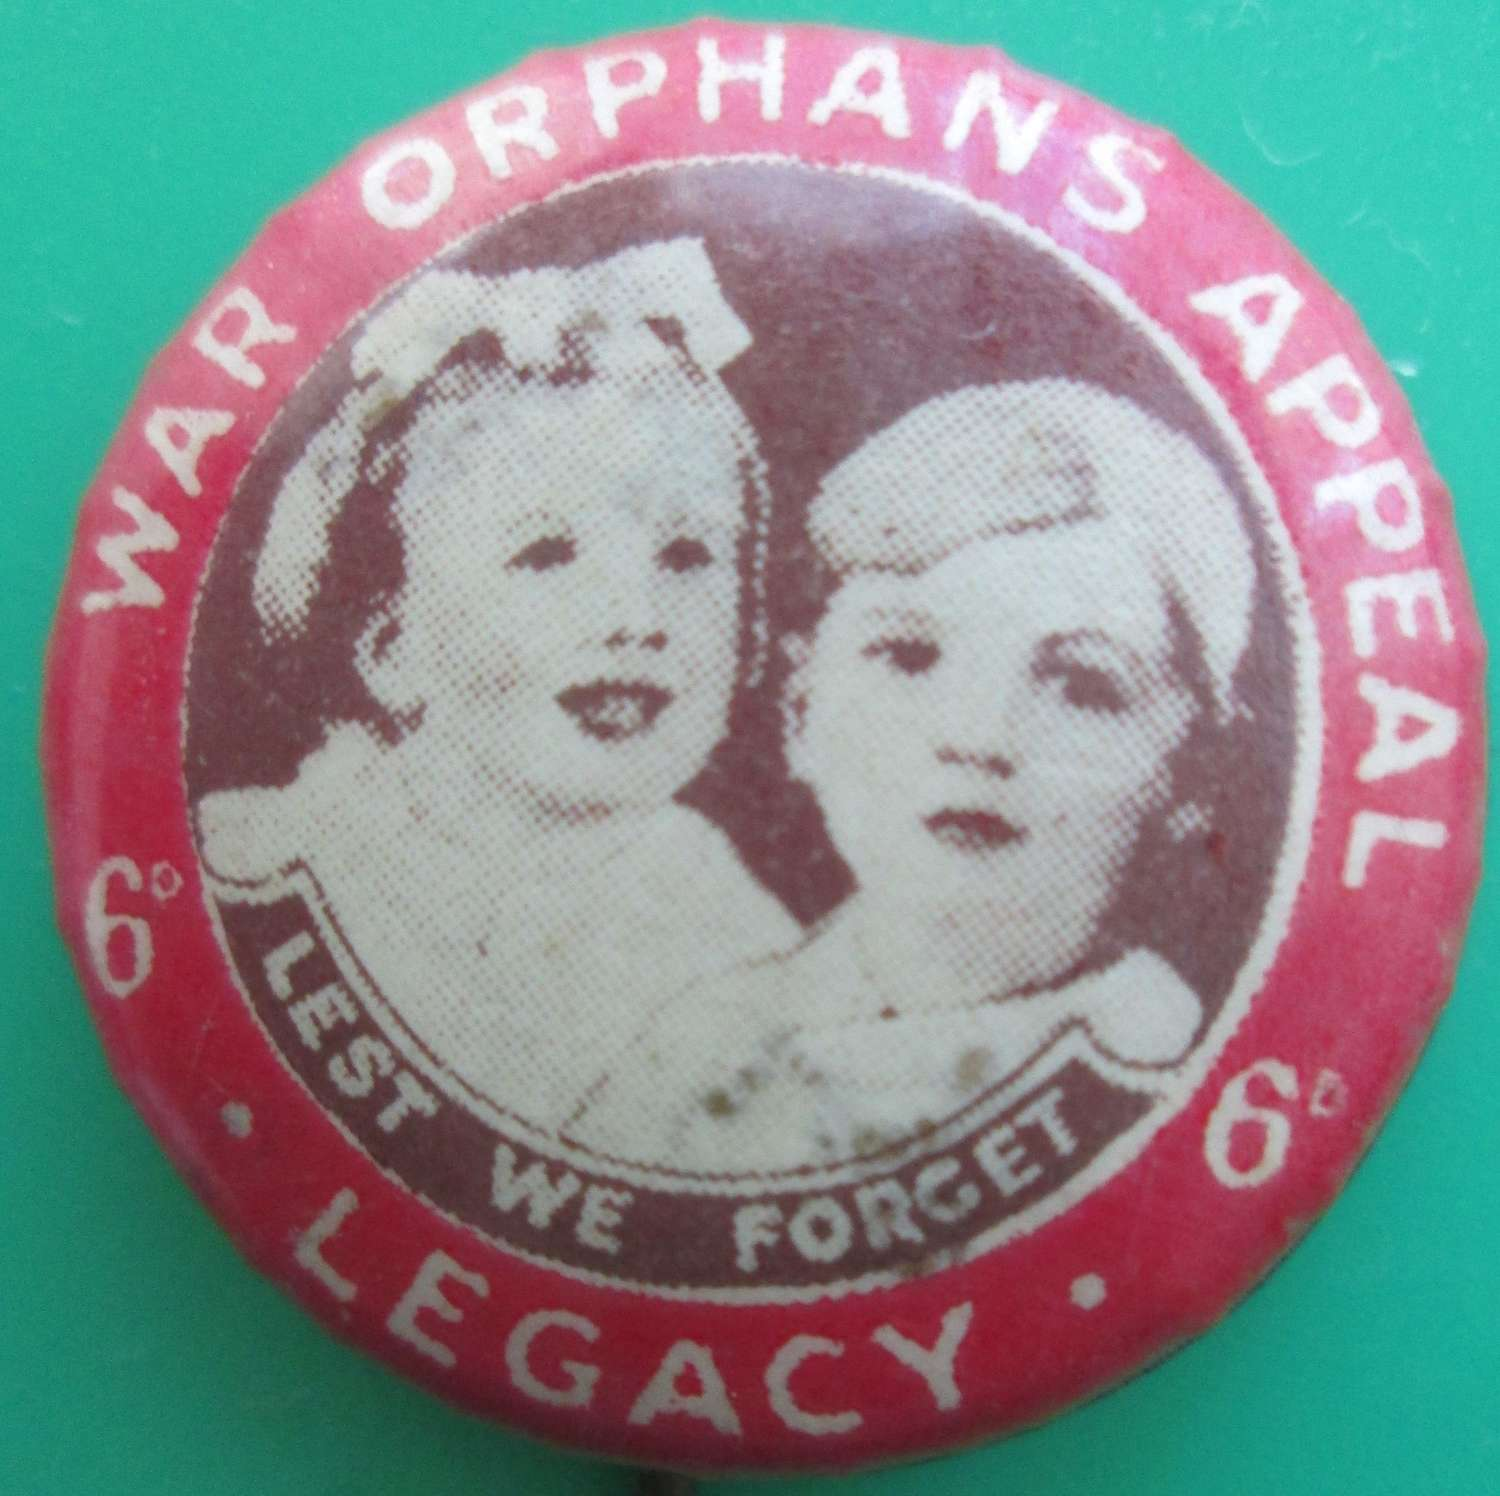 A SMALL PIN BADGE FOR THE WAR ORPHANS APPEAL LEGACY